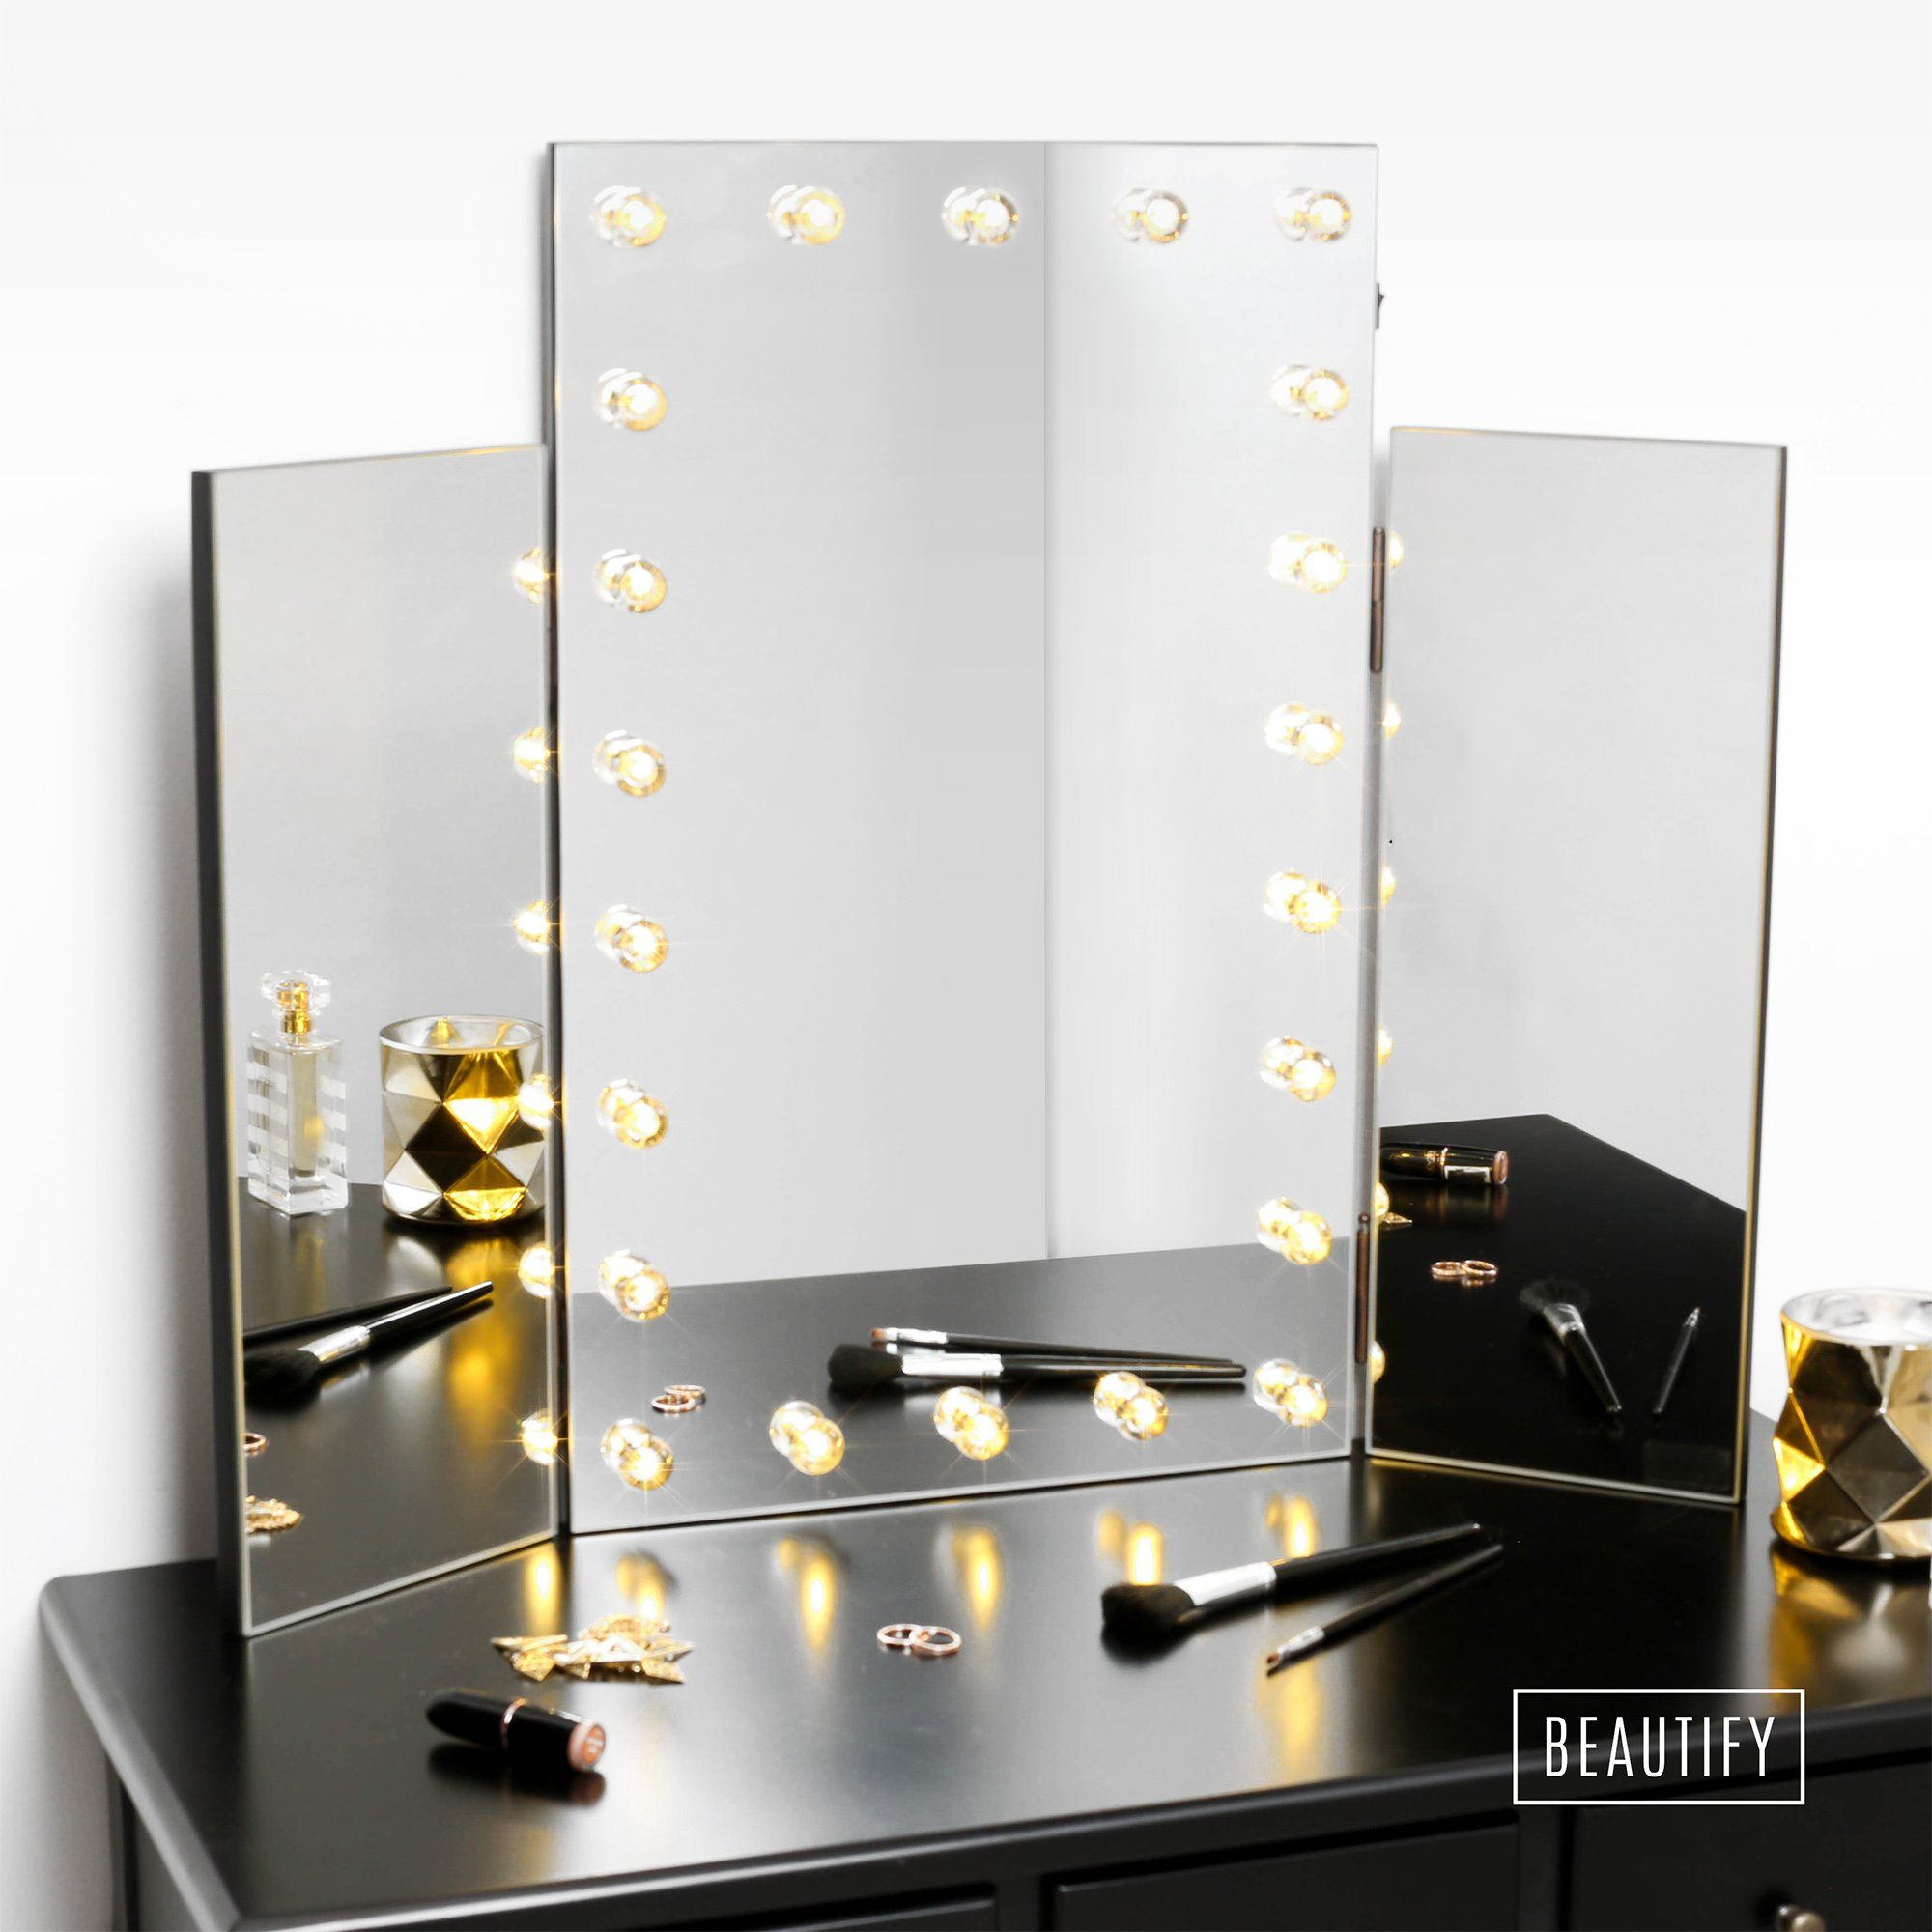 Beautify Large Trifold Hollywood Lighted Makeup Dressing Table Vanity Mirror  With 22 LED Lights   Warm Subtle Natural Lighting. Classically Stylish Tri  Fold ...